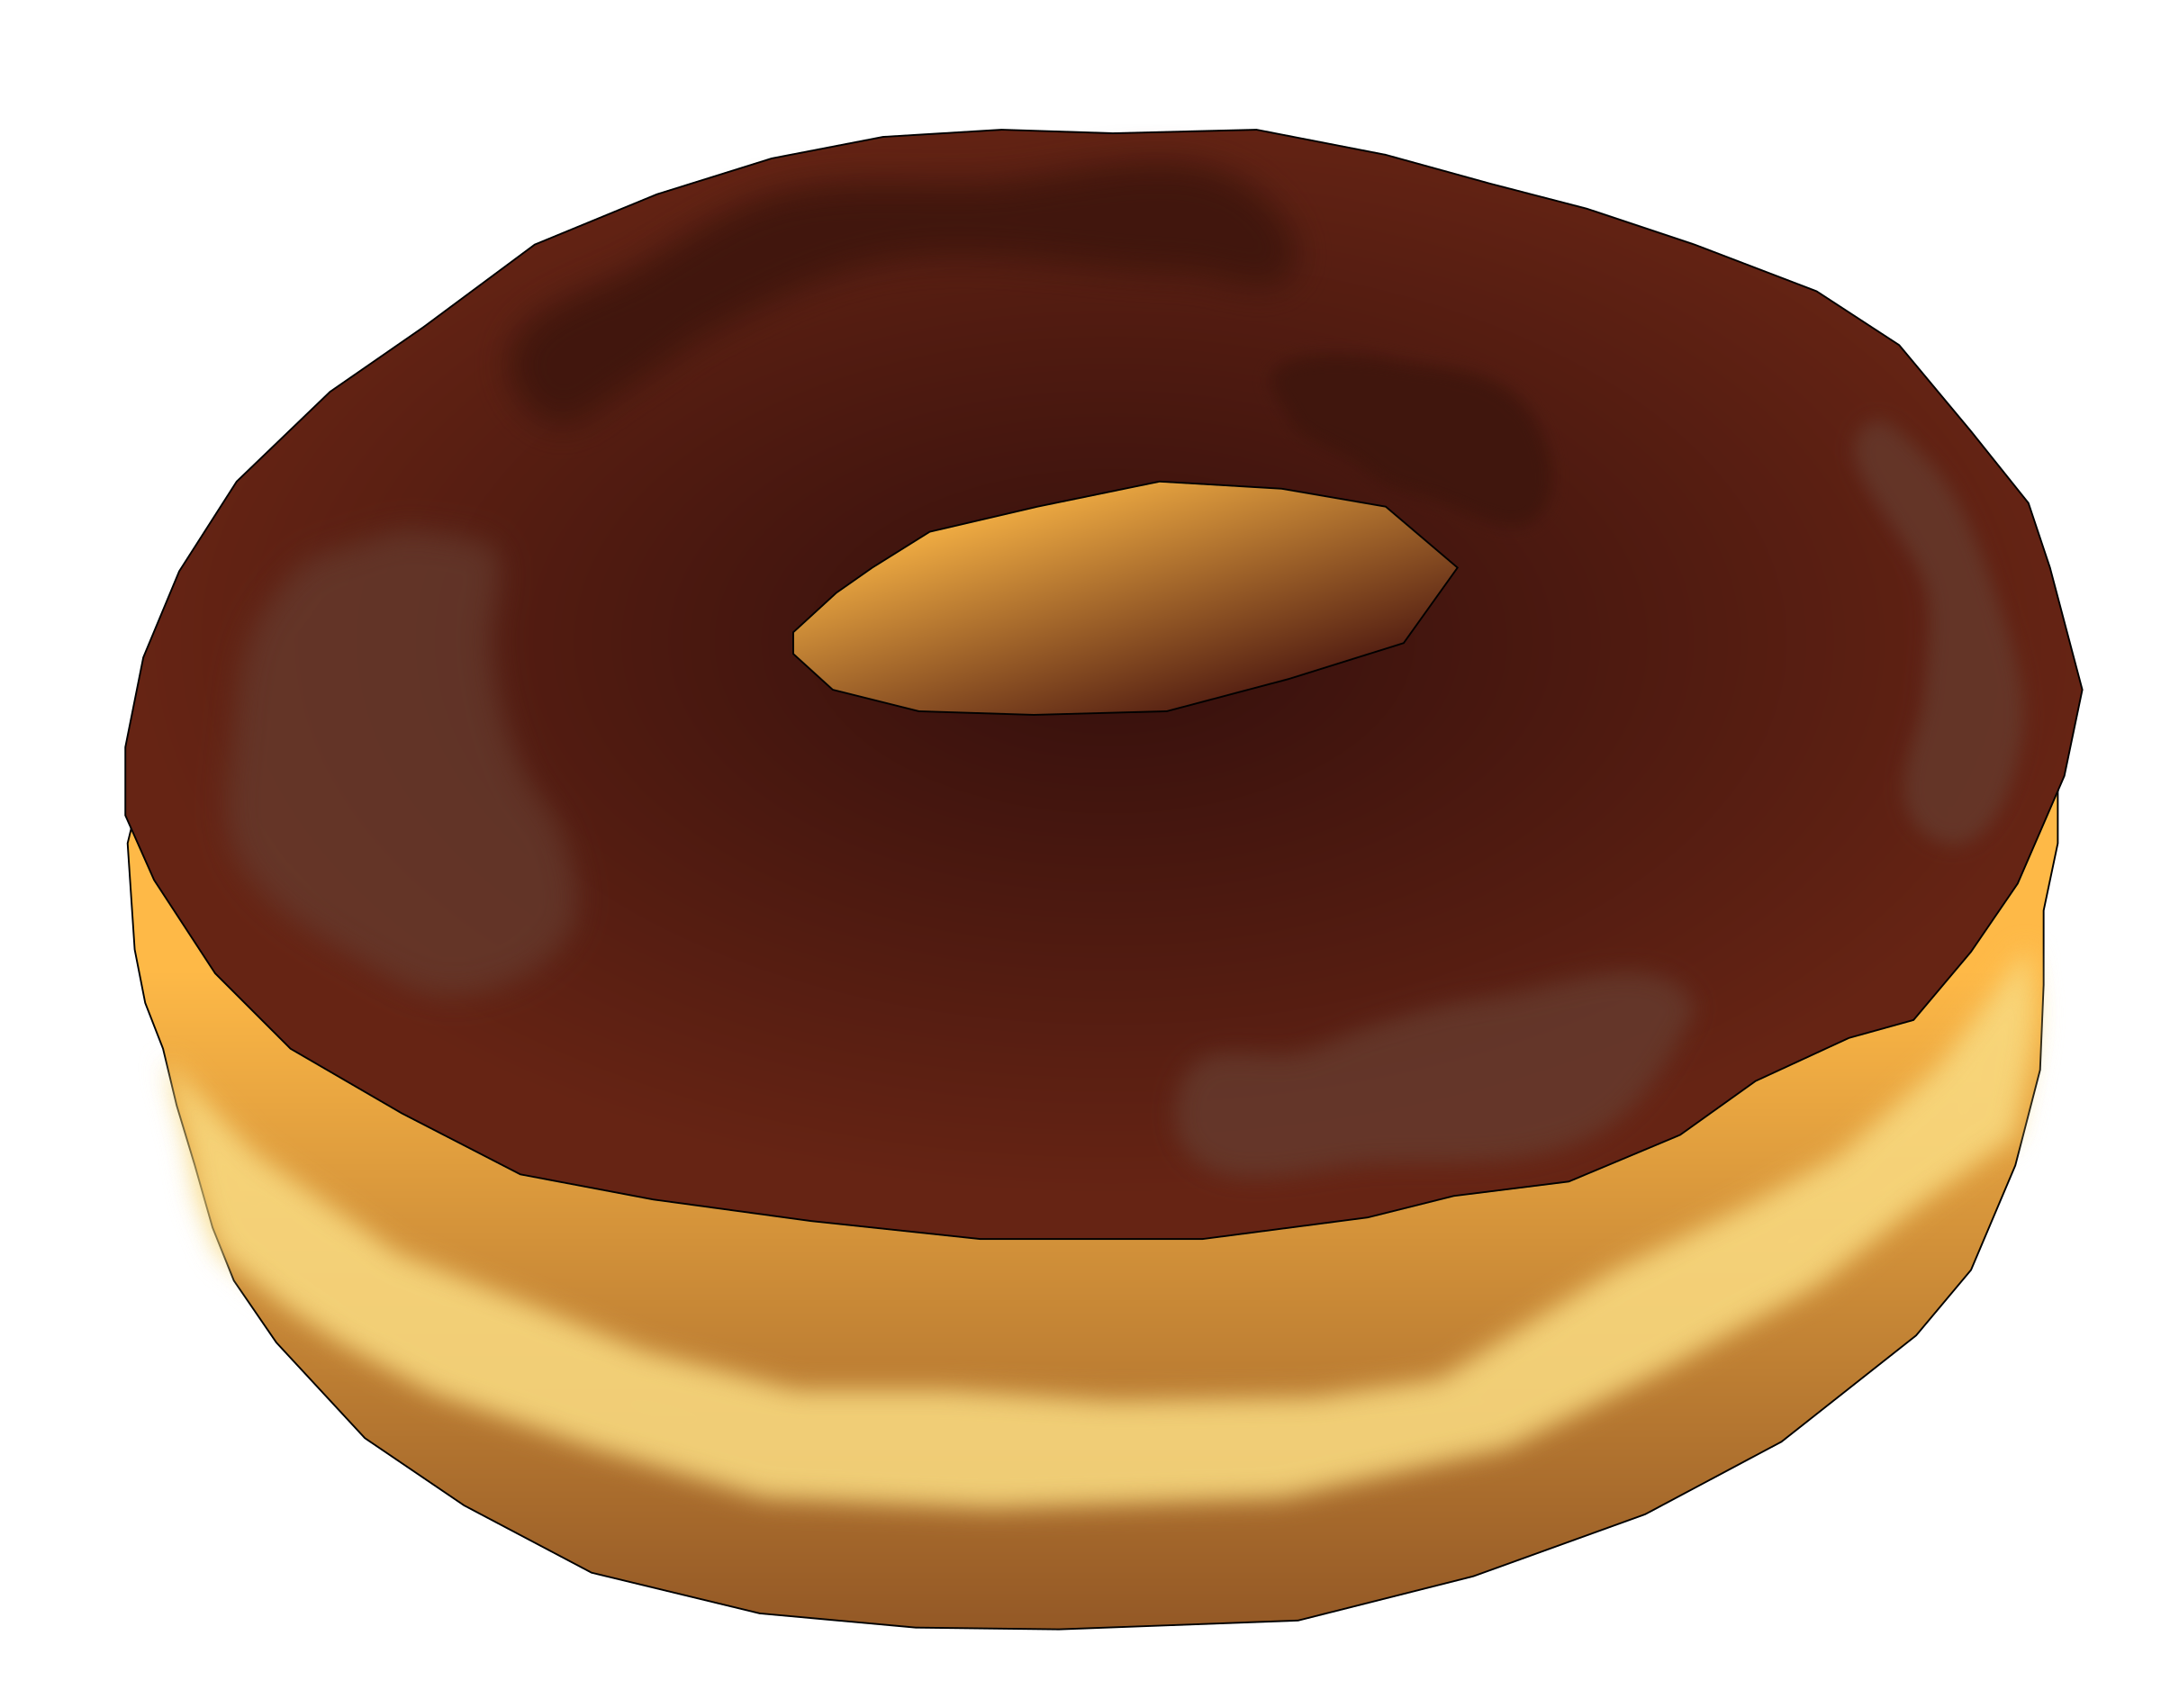 donut  doughnut png images free download donut clipart images donut clipart